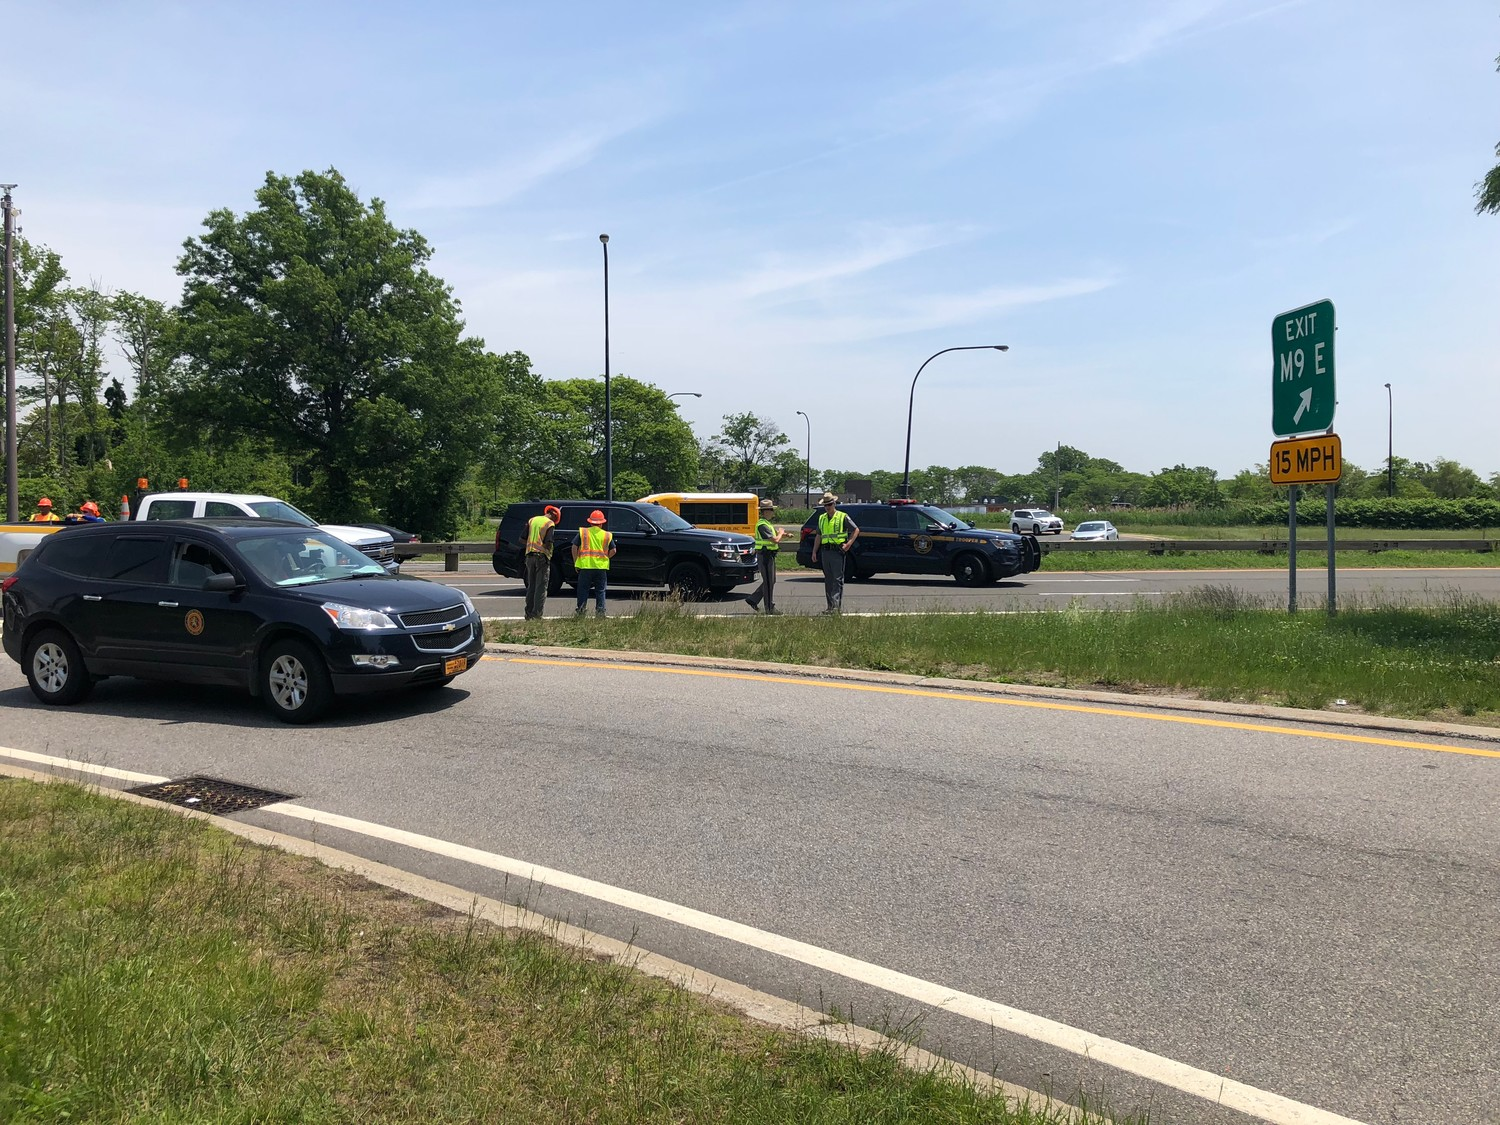 Drivers were diverted off of exit M9 on the Meadowbrook Parkway.